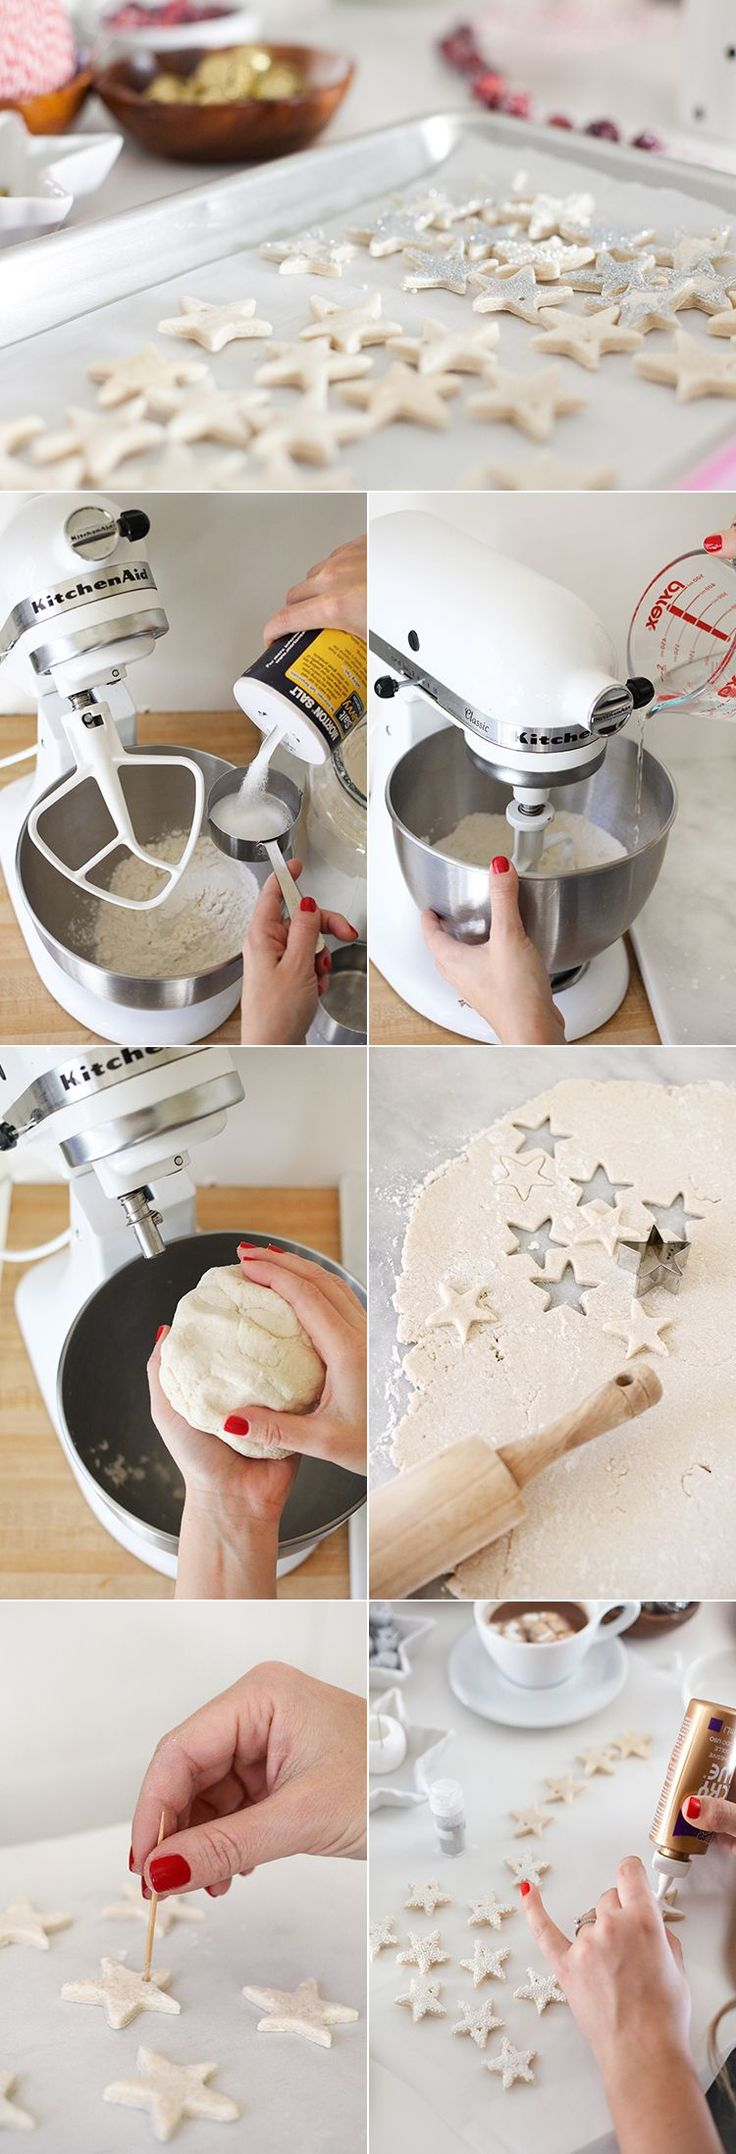 Recipe + How to Make Salt Dough Ornaments